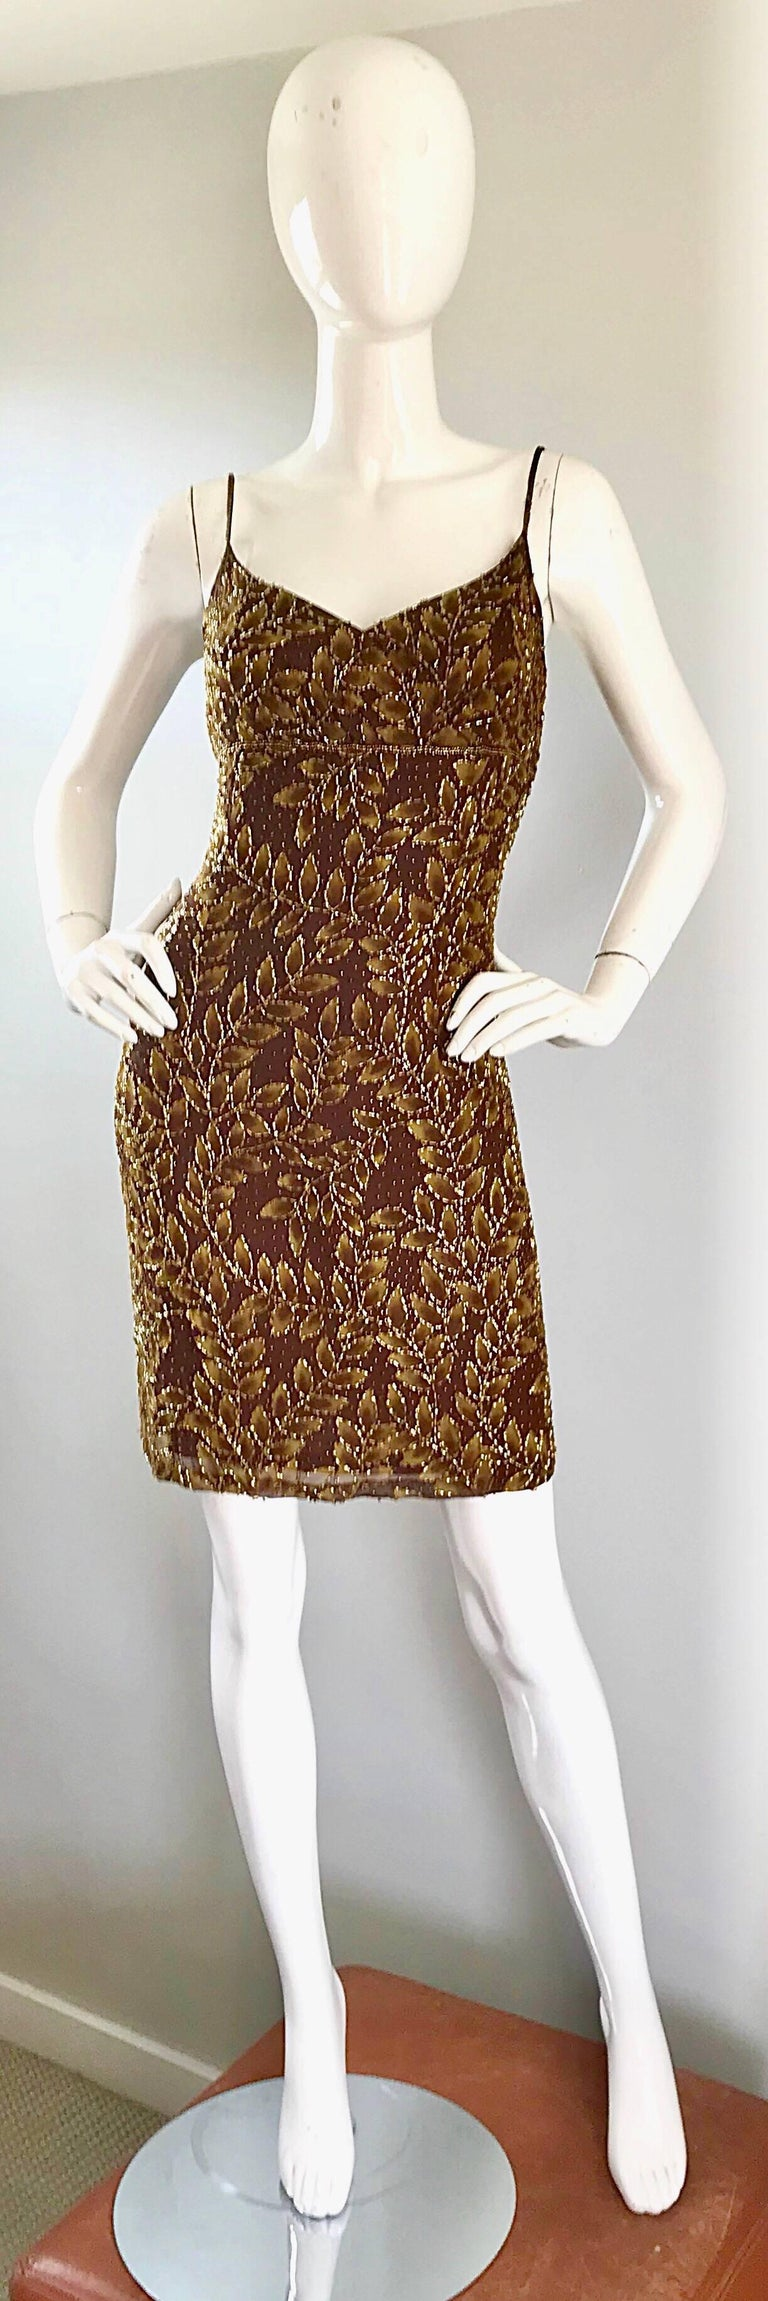 1990s Oleg Cassini Size 10 Brown and Gold Beaded Vintage 90s Silk Dress 9